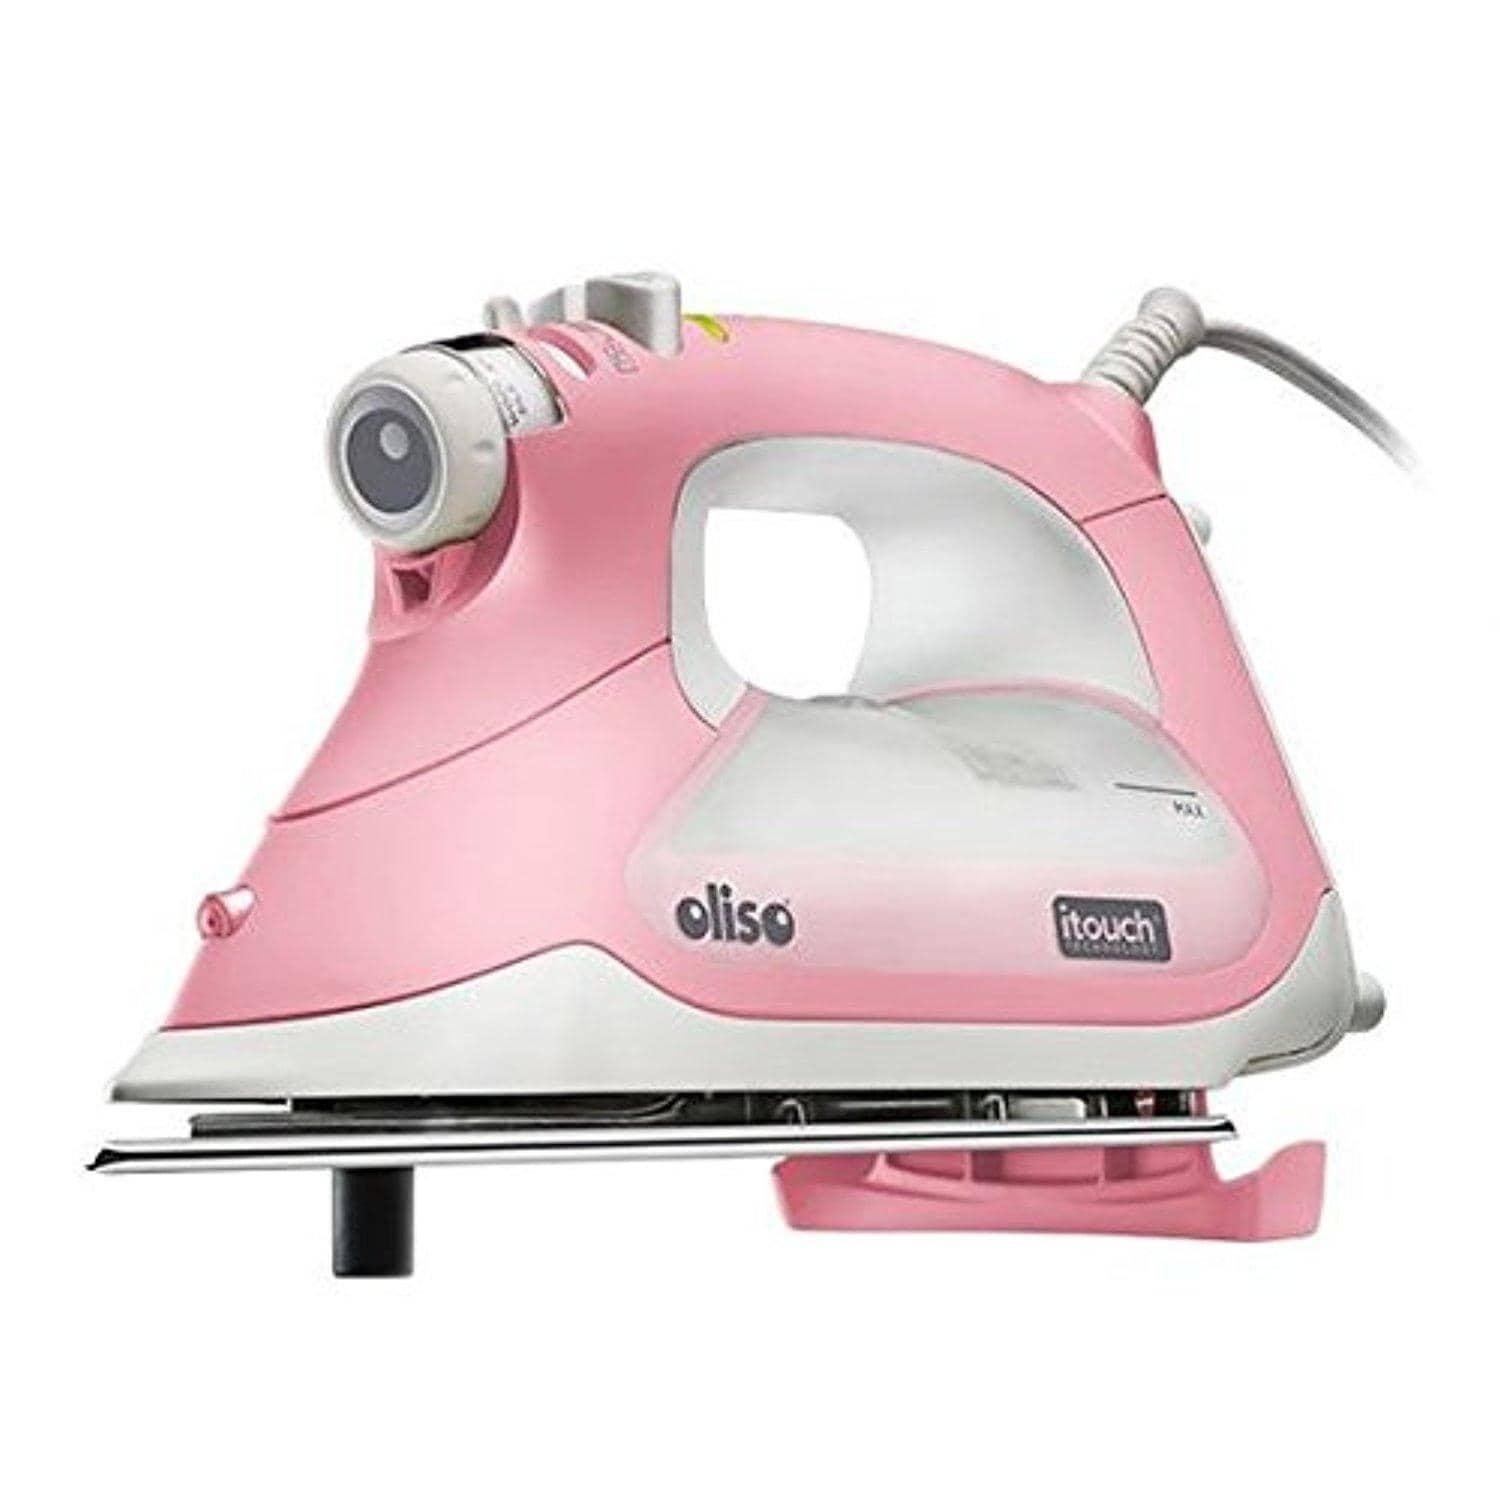 OLISO Pro Smart Iron (Limited Edition Pink) (Plastic)